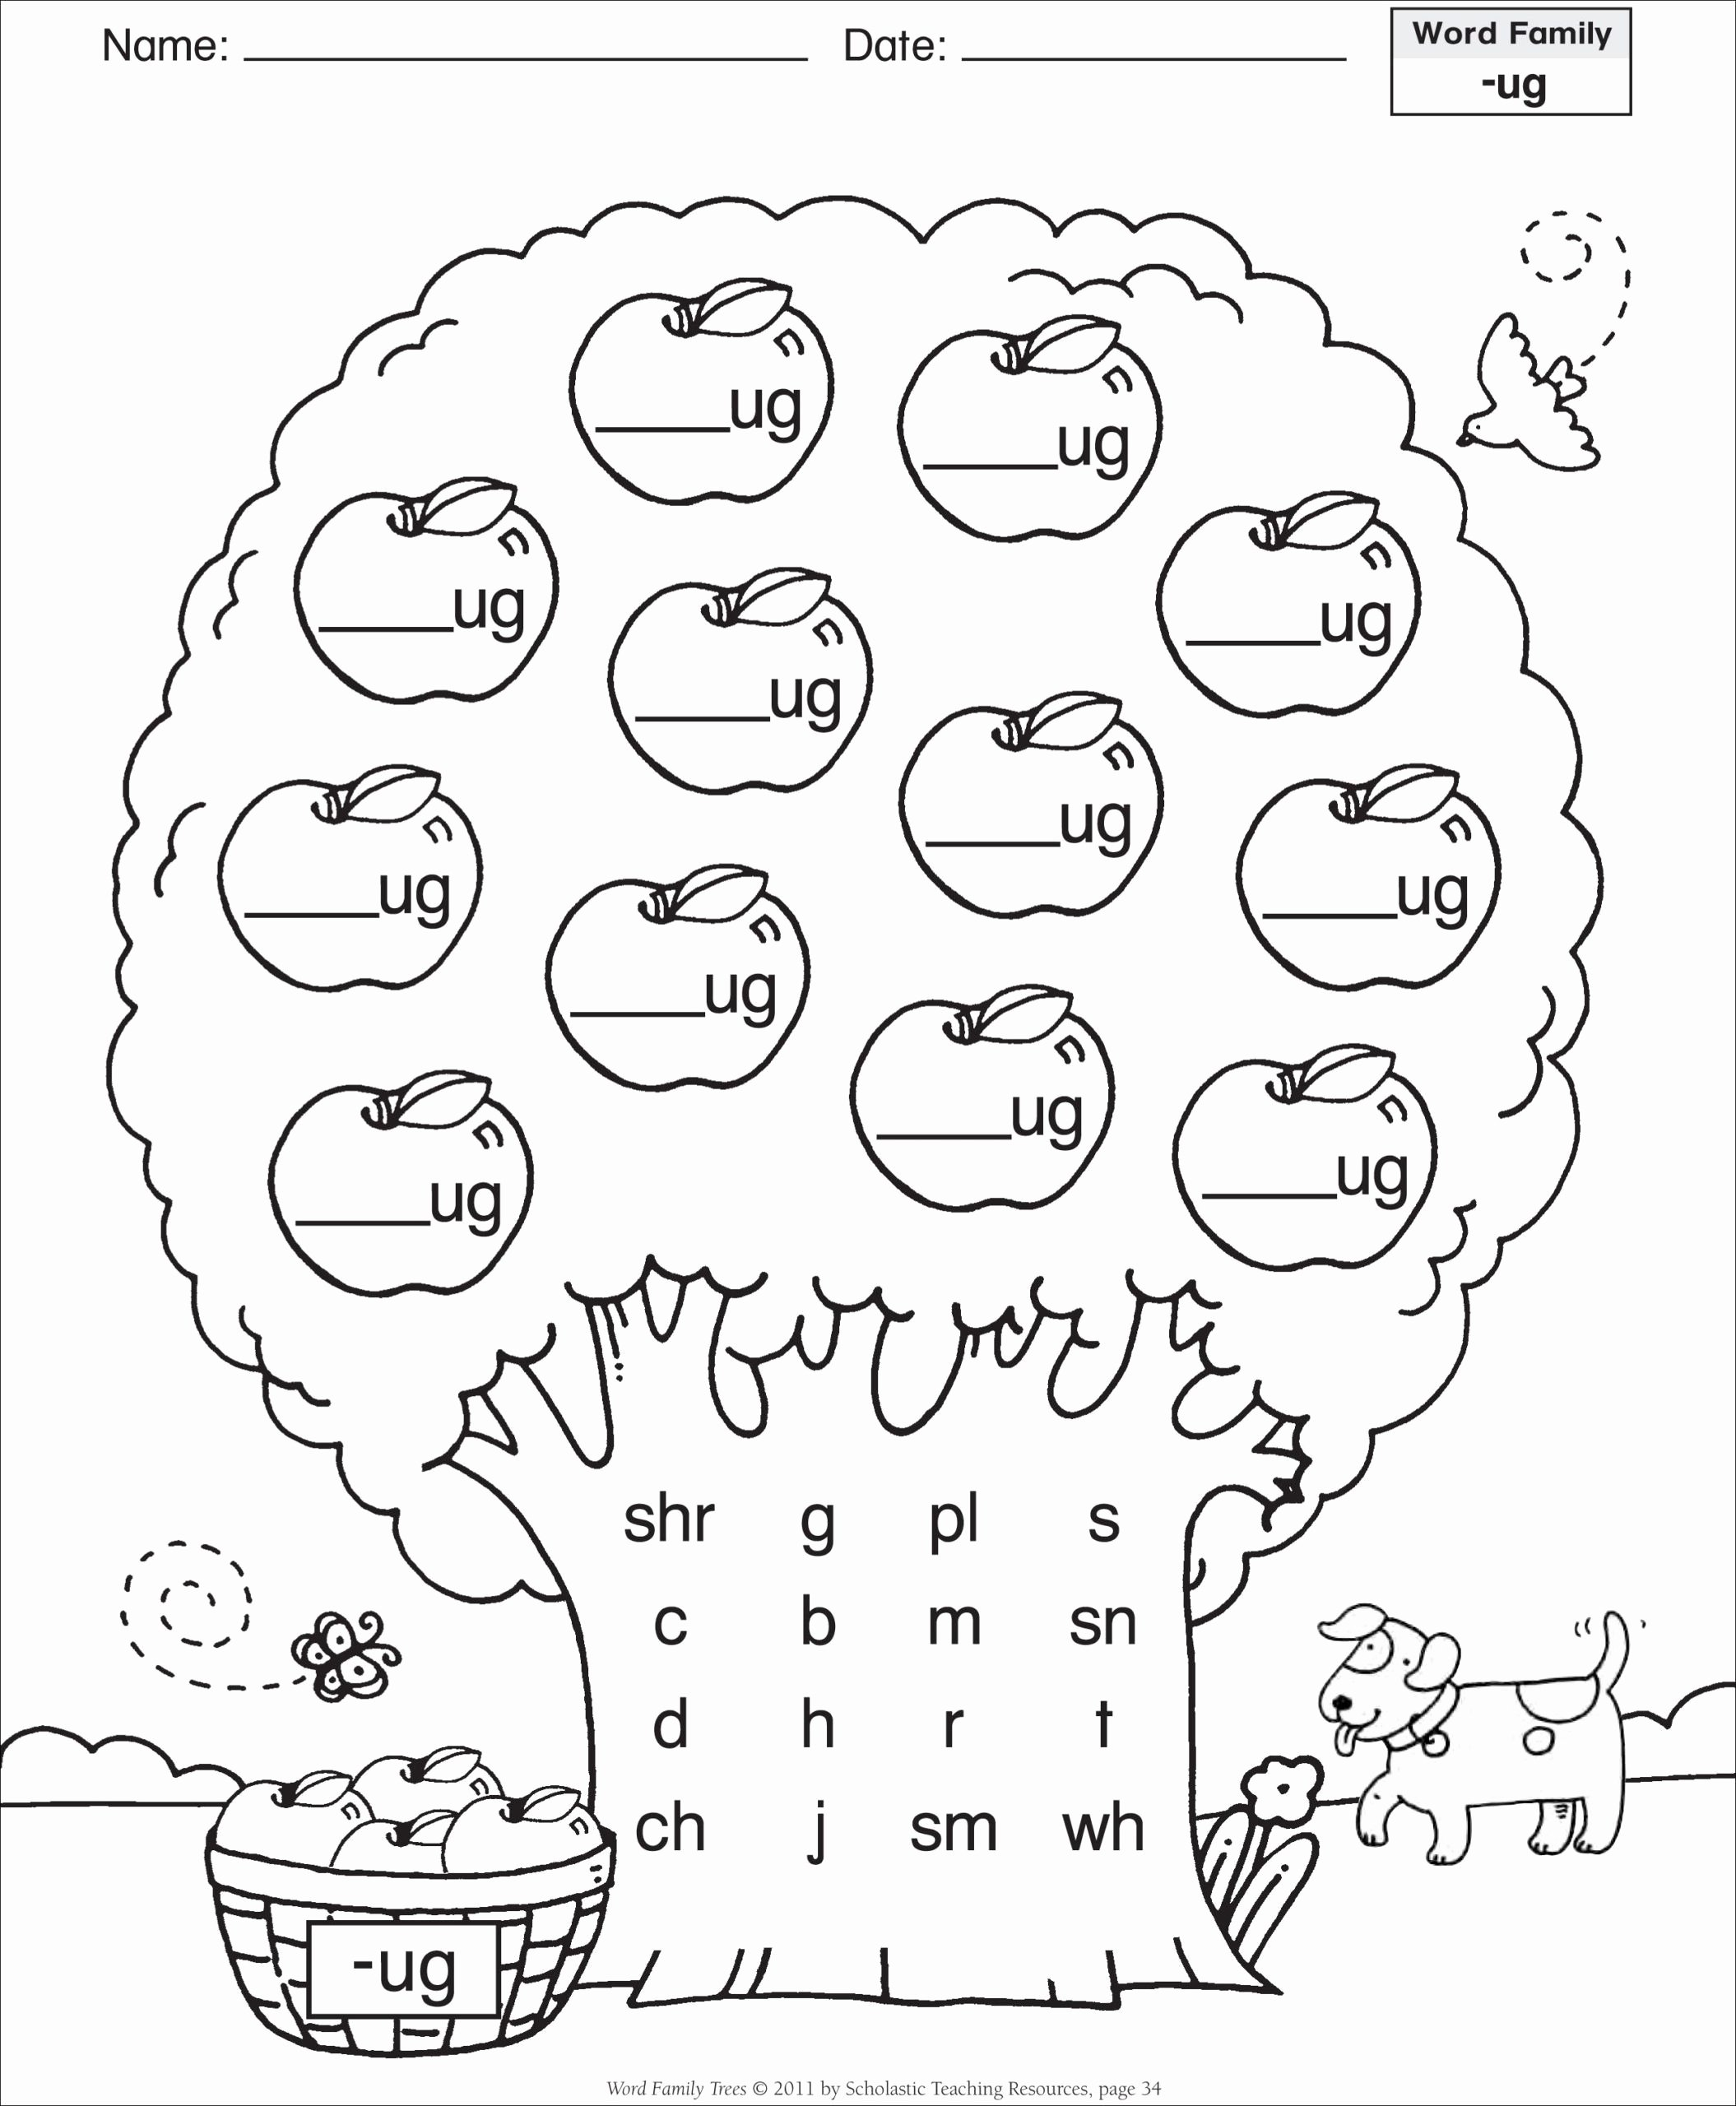 Worksheets for Preschoolers Alphabet Fresh Worksheets Printable Alphabet Letters Templates Tracing